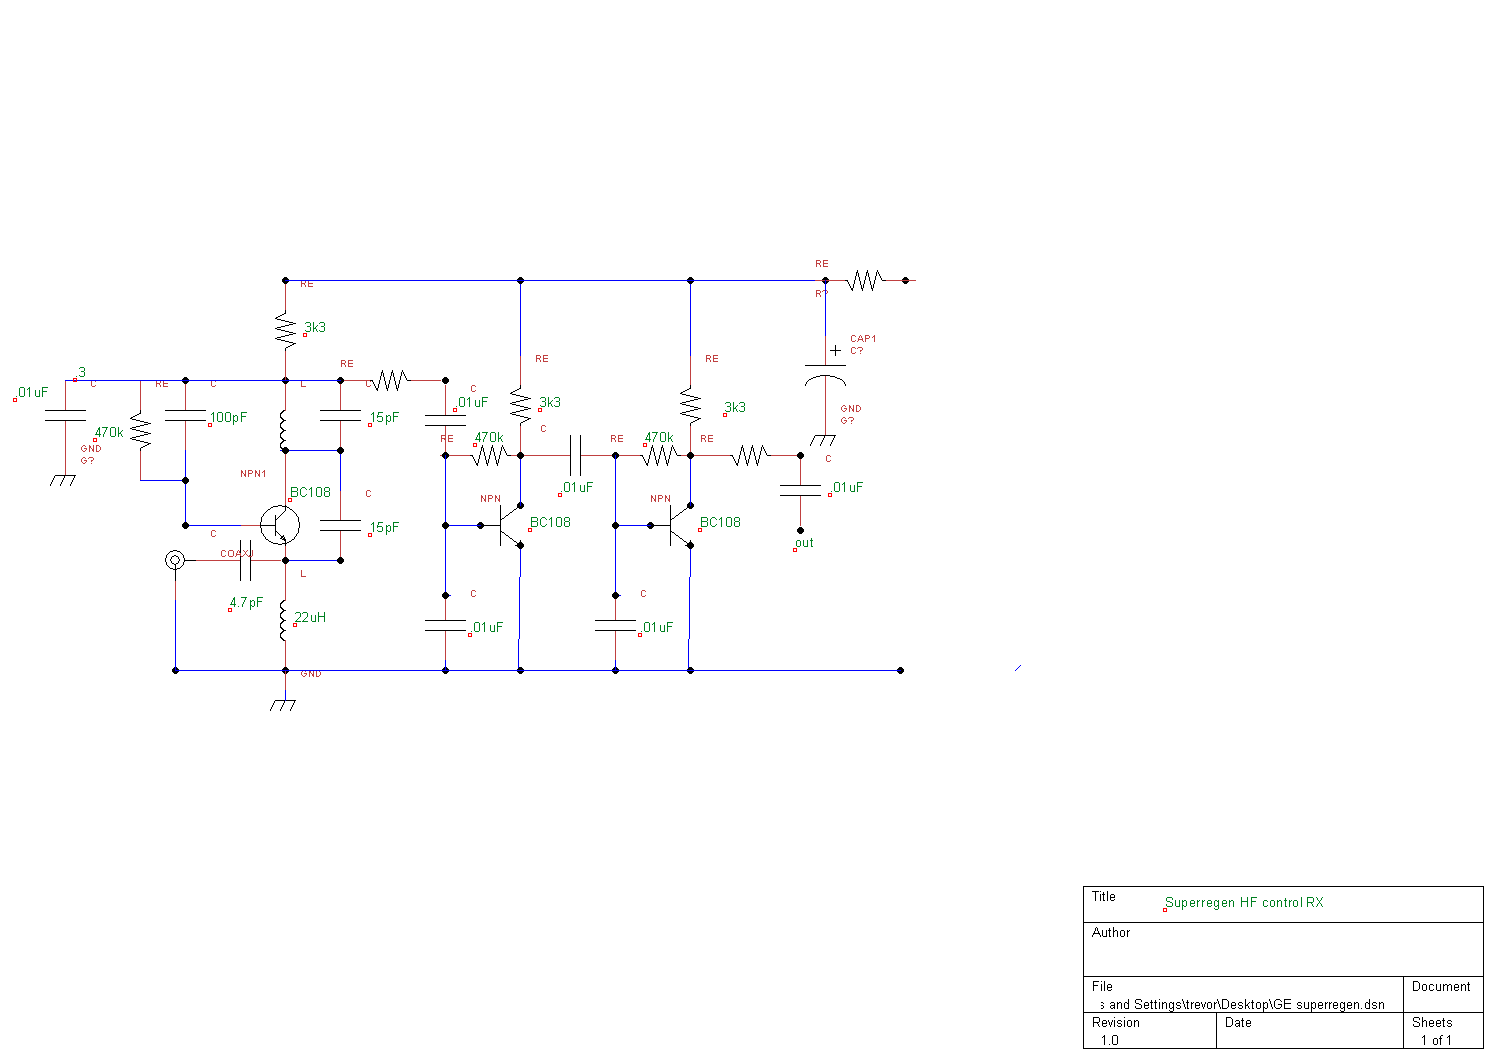 Electronic Circuit Schematics Block Diagram Of Transmitter For Superregenerative Receiver Built By Ge Labs